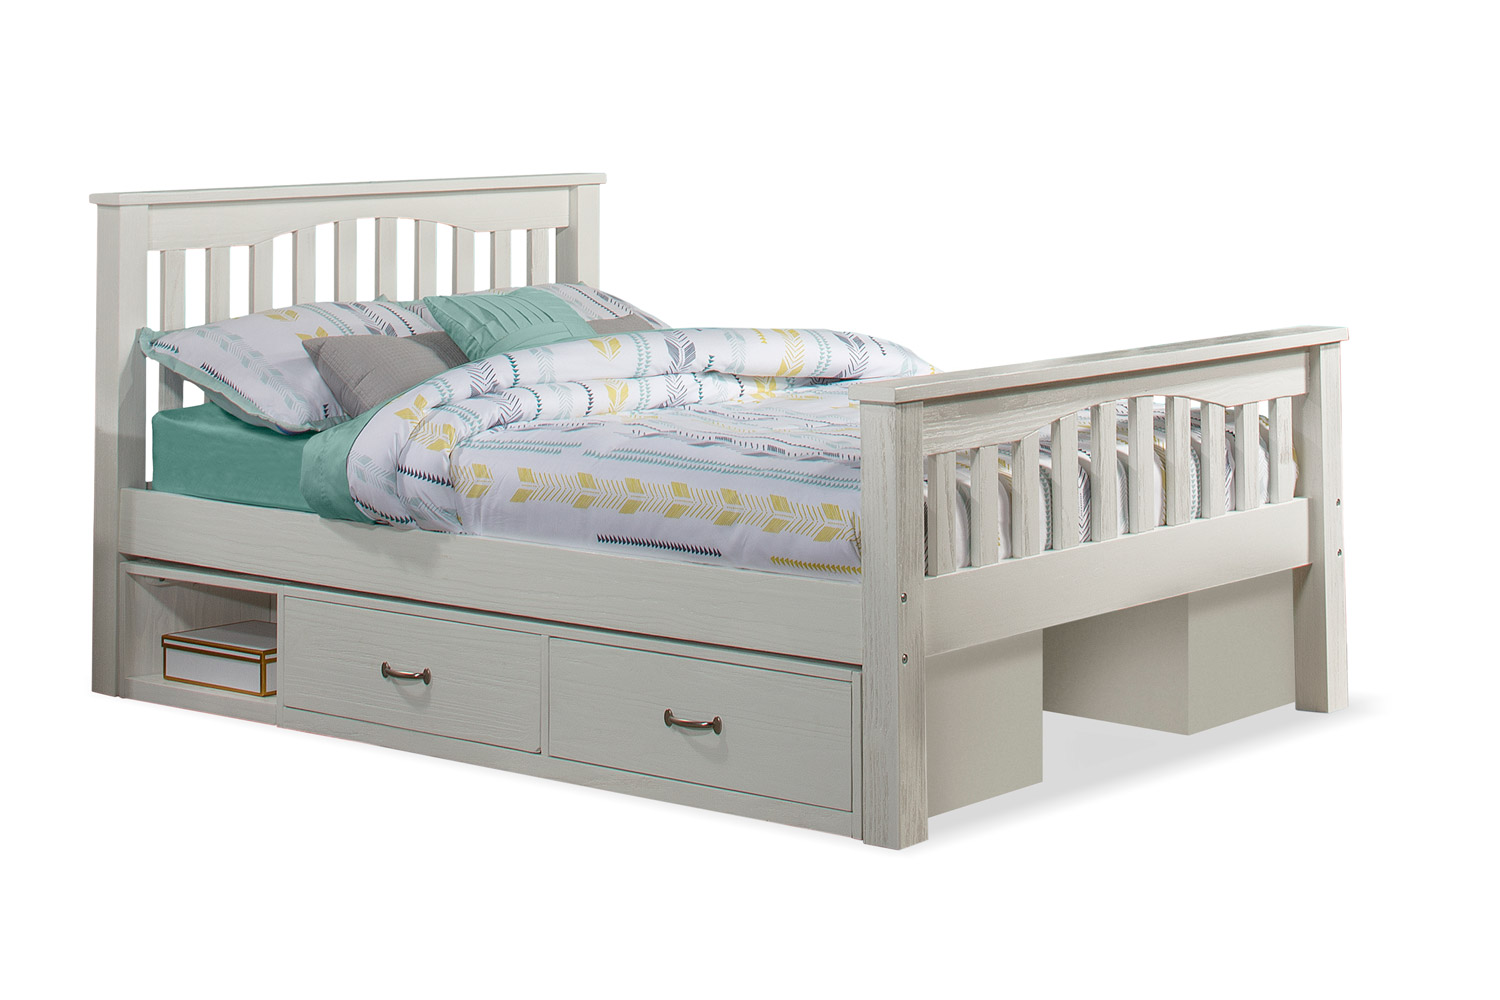 NE Kids Highlands Harper Bed with (2) Storage Units - White